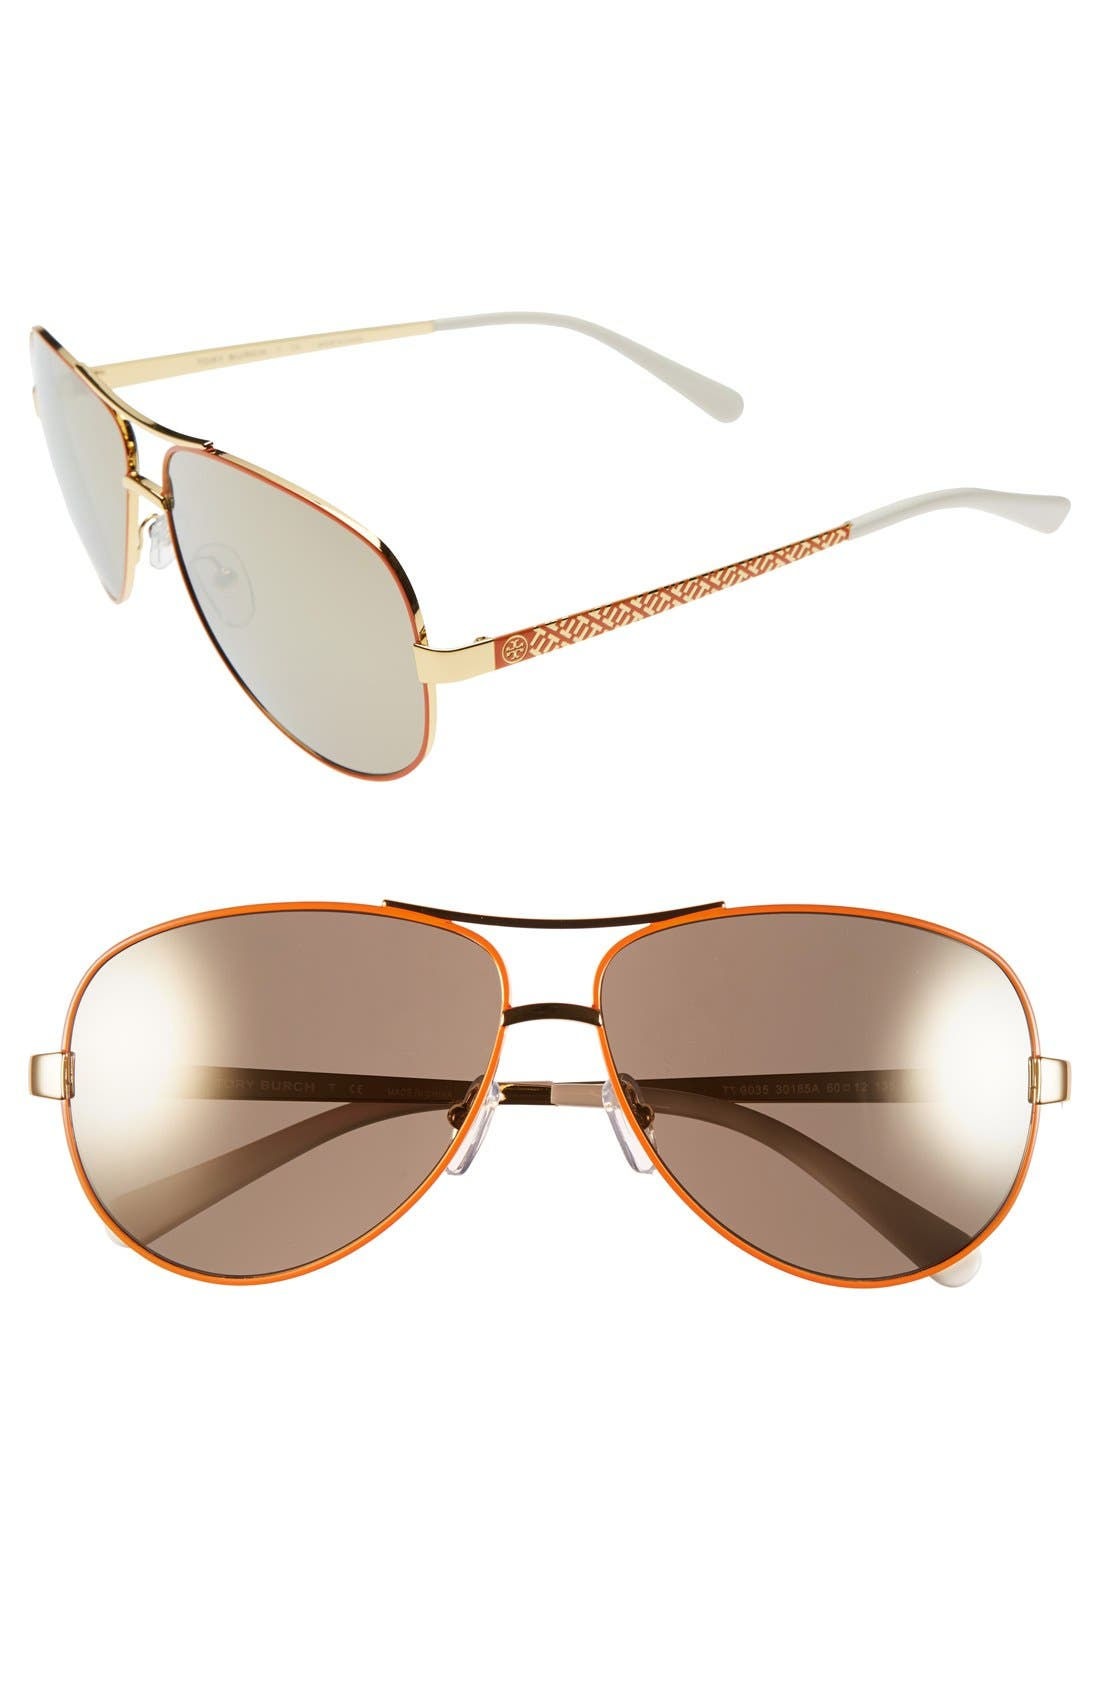 Main Image - Tory Burch 60mm Aviator Sunglasses